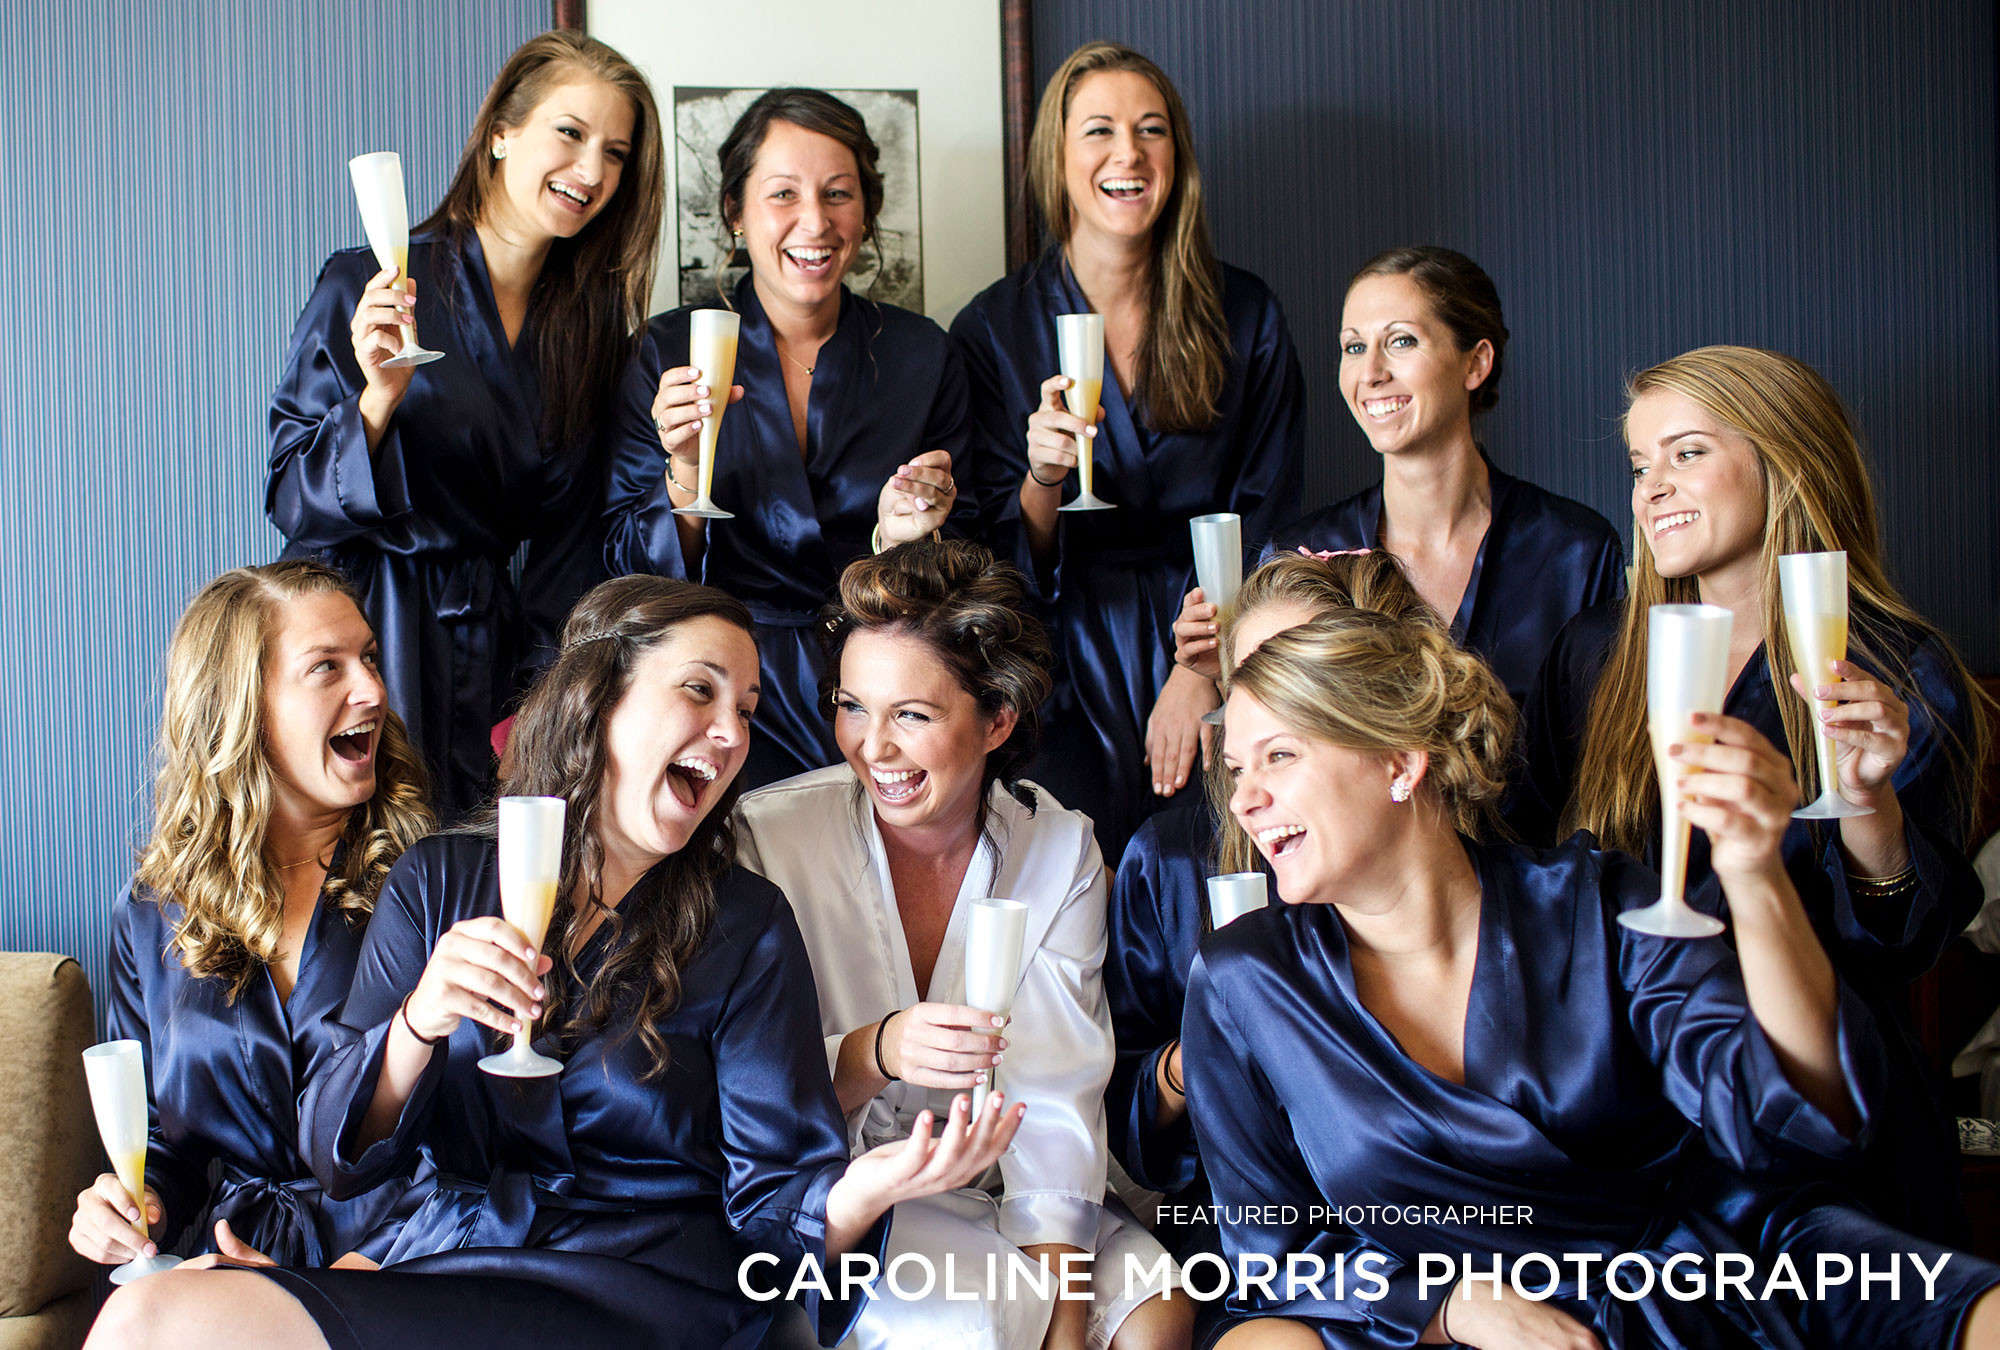 Caroline Morris Photography - Featured Photographer